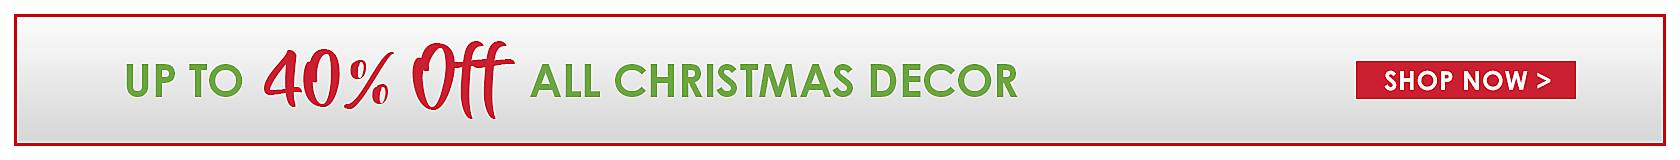 Up to 40% off all Christmas Decor - Shop Now